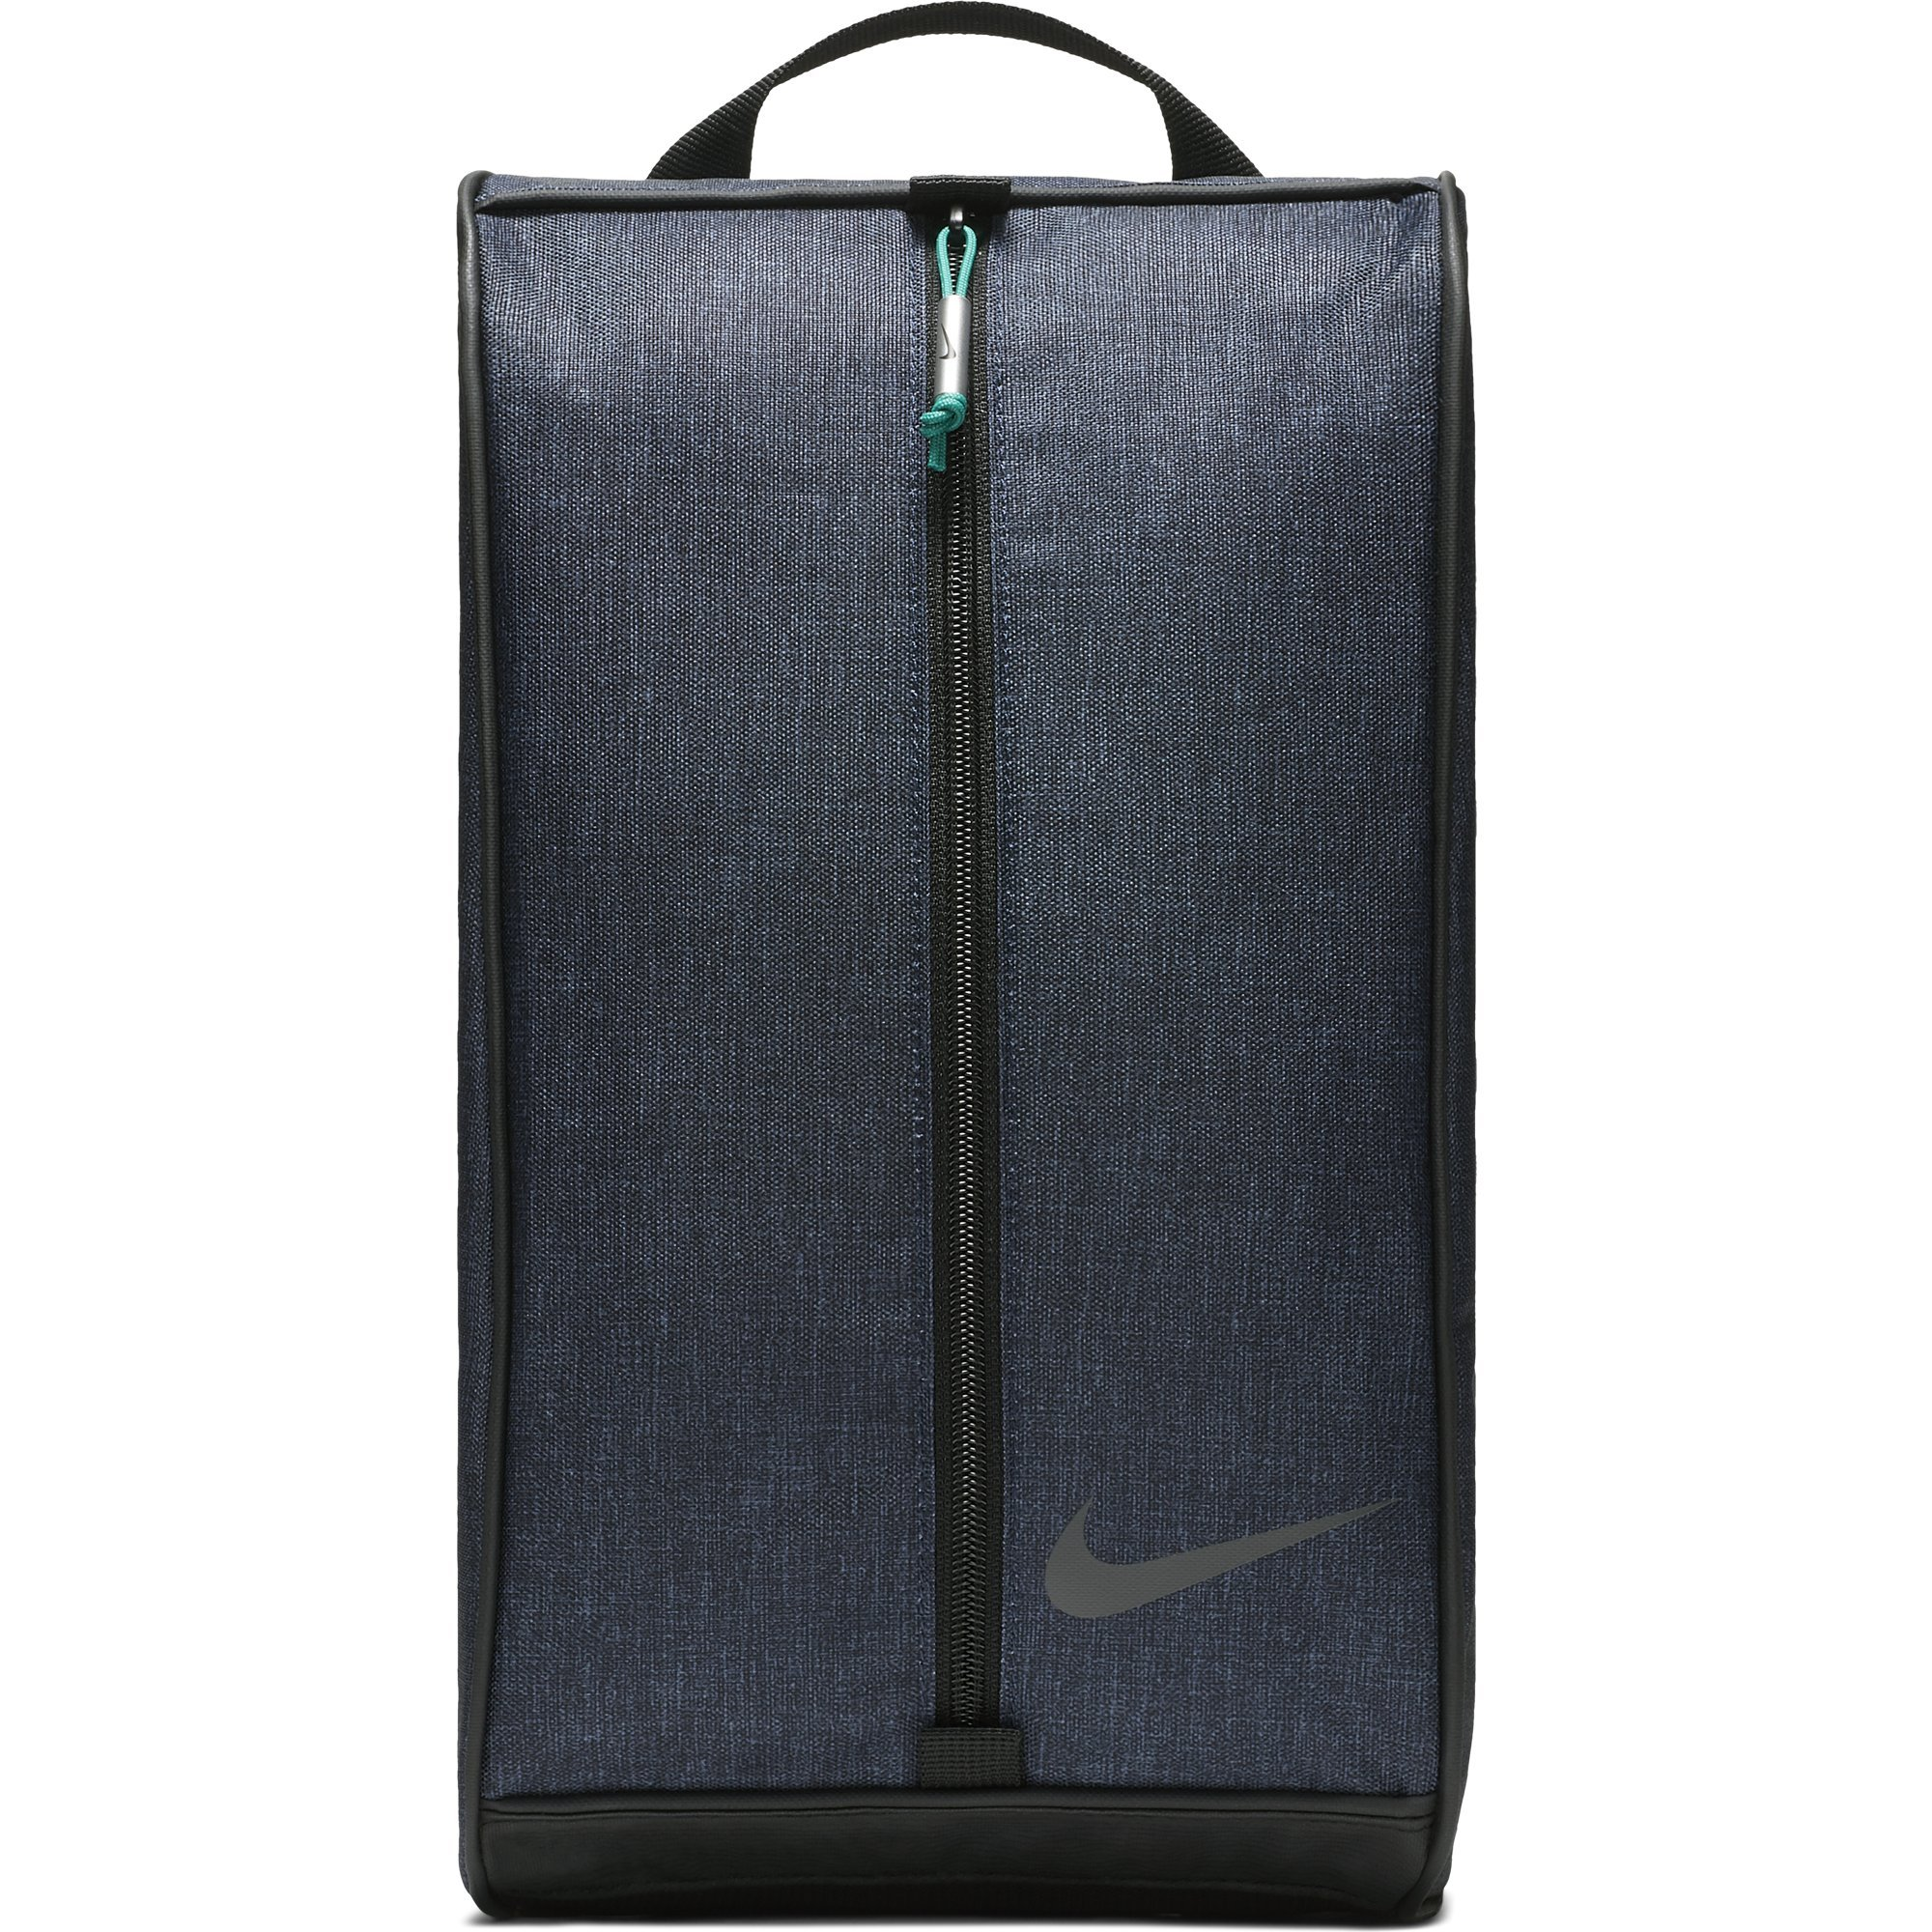 NIKE Sport Golf Shoe Tote, Obsidian/Black/Anthracite by Nike